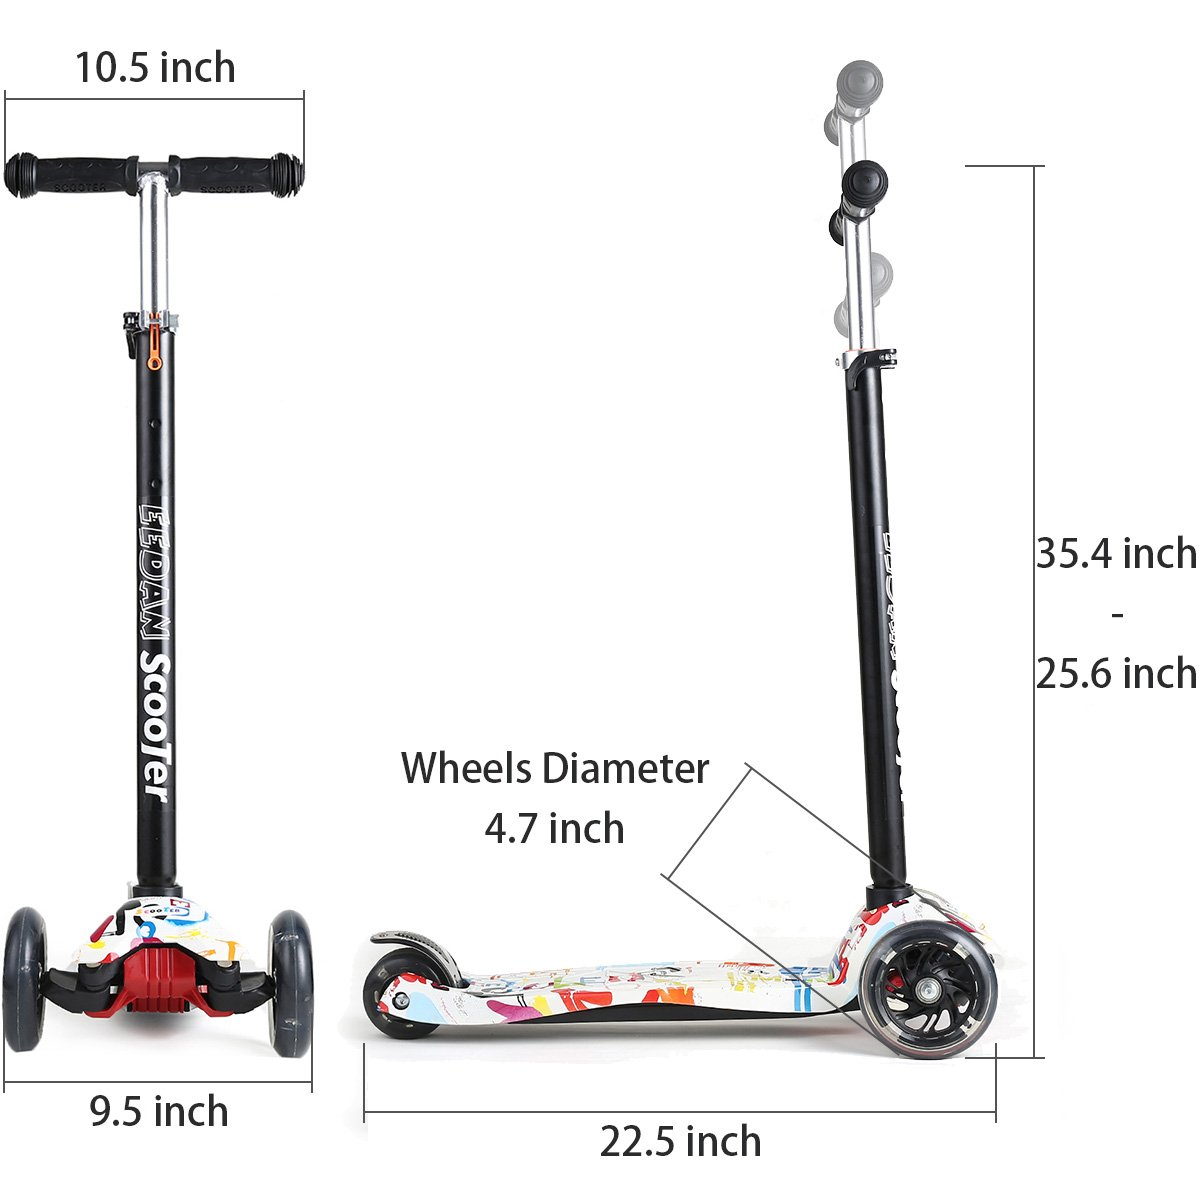 EEDAN Scooter for Kids 3 Wheel T-bar Adjustable Height Handle Kick Scooters with Deluxe PU Flashing Wheels Wide Deck for Boys/Girls from 2 to 14 ...